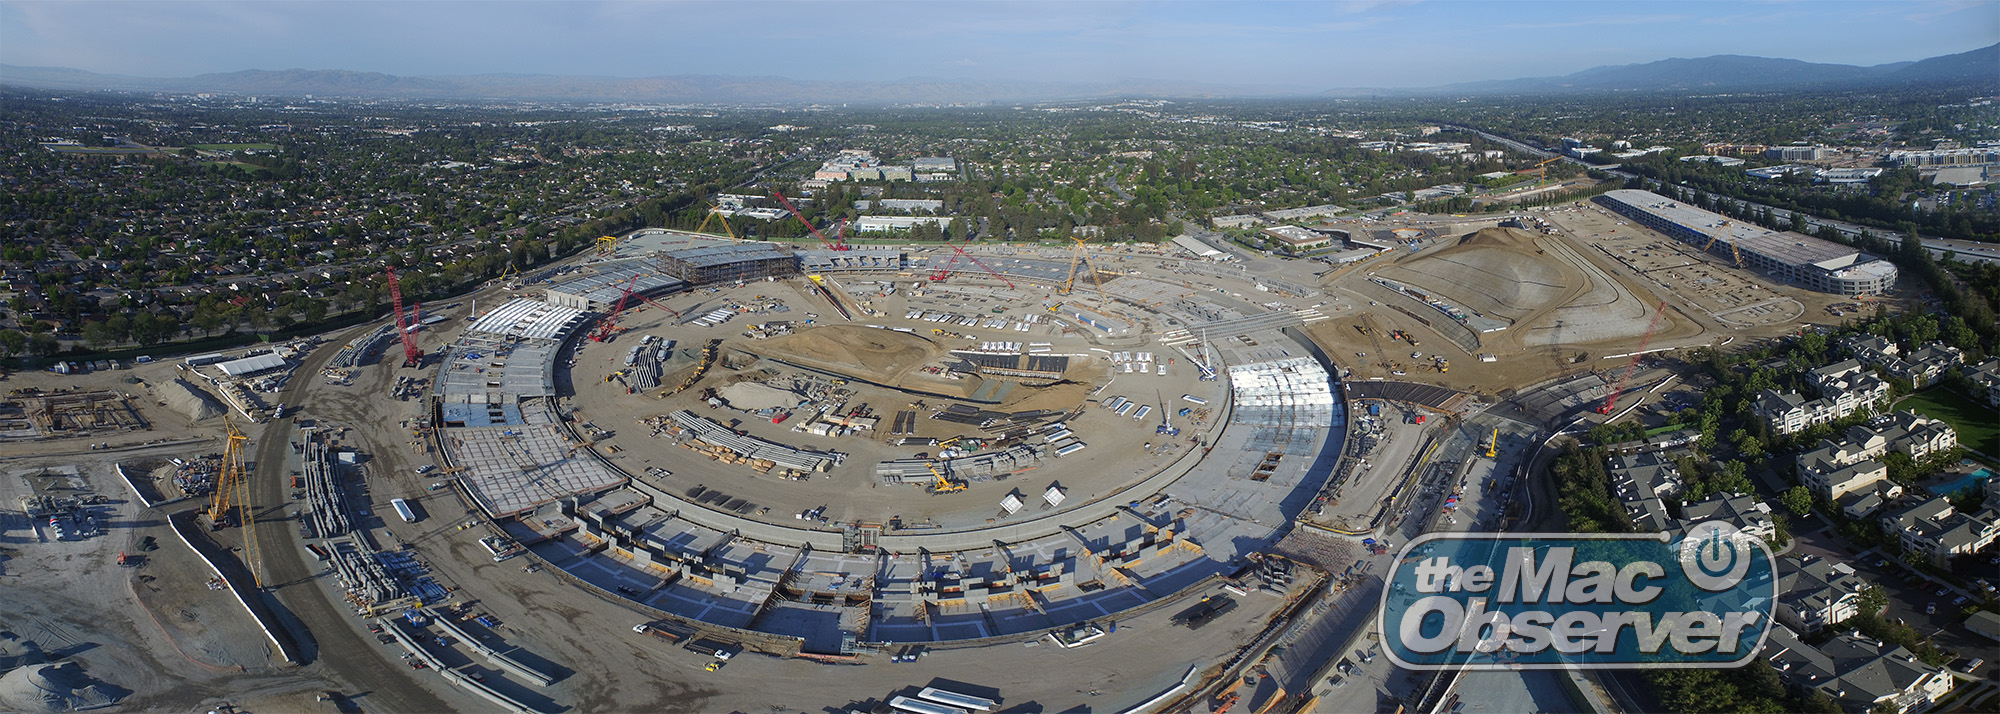 Apple Campus 2 aerial panorama